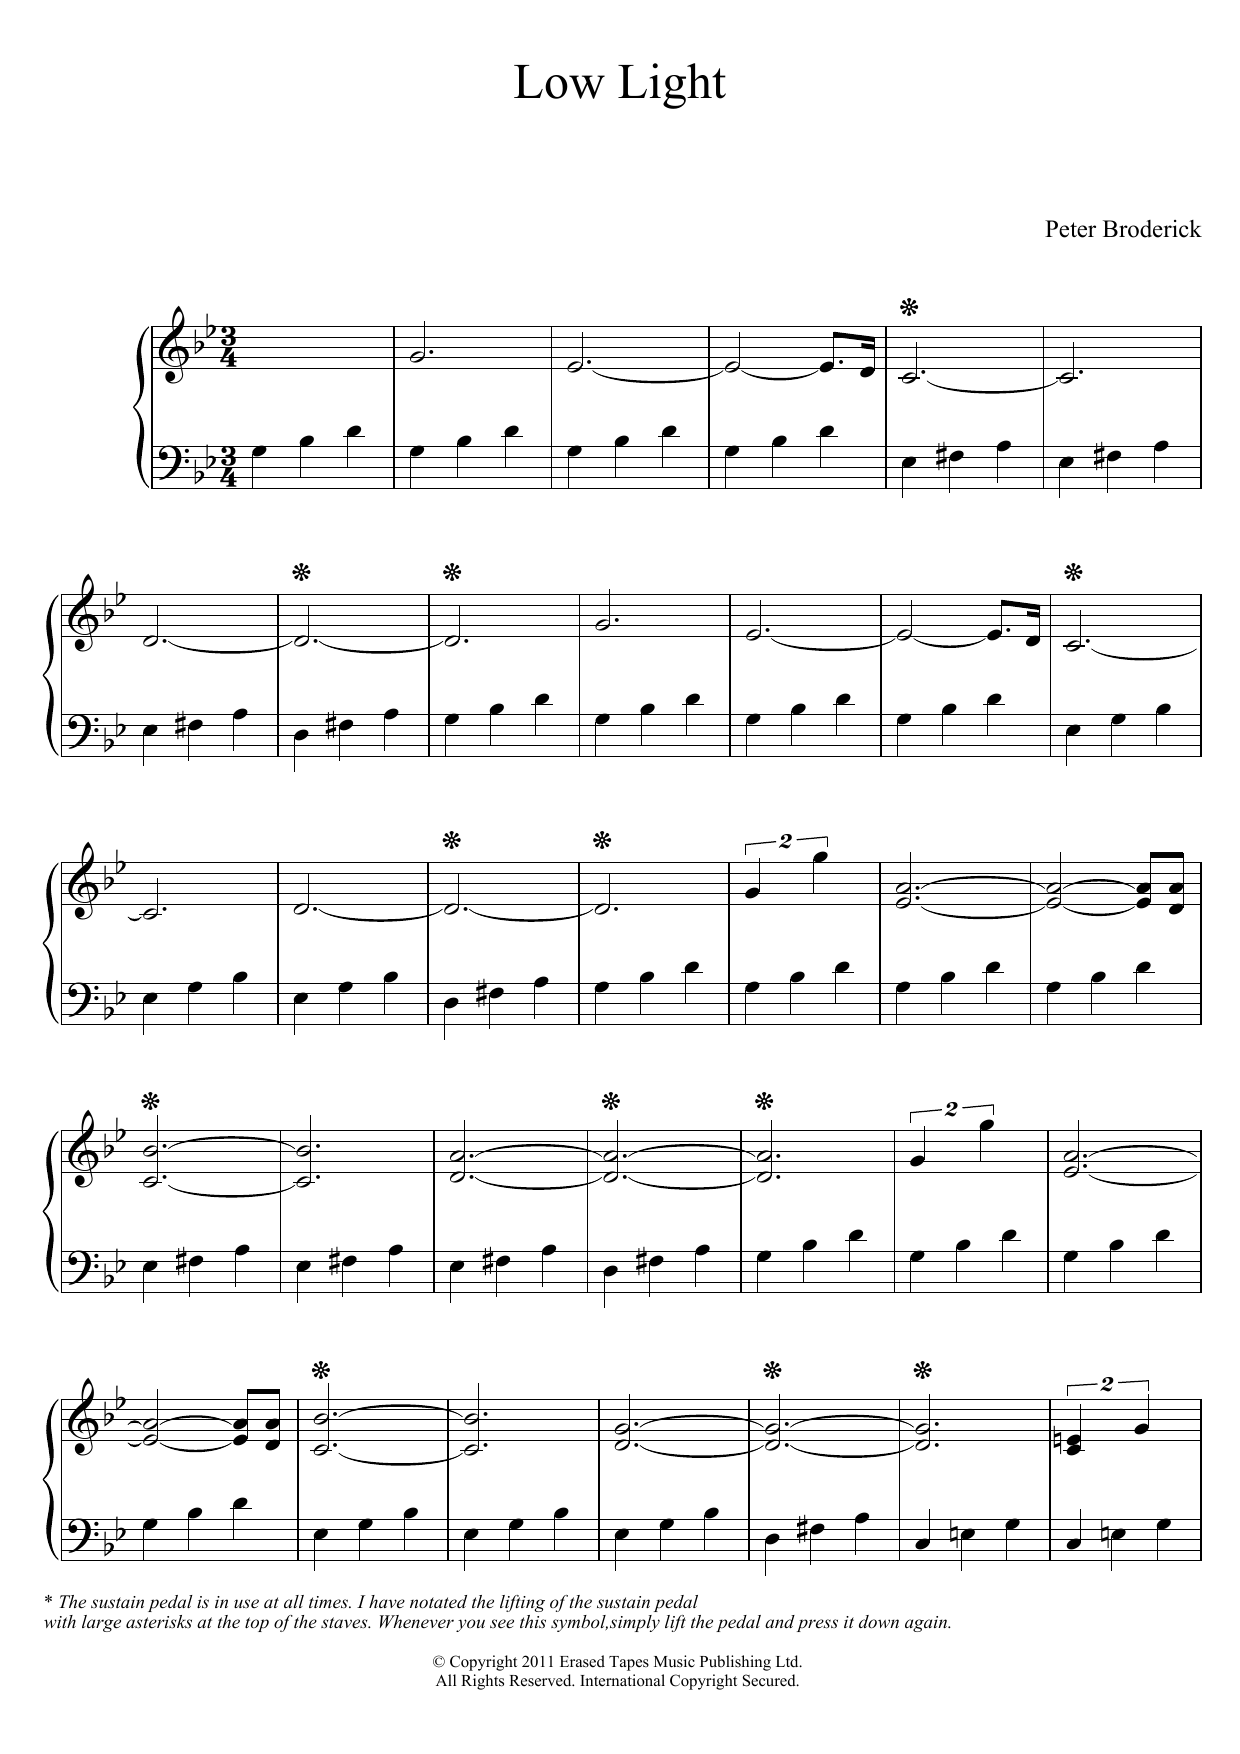 Low Light Sheet Music